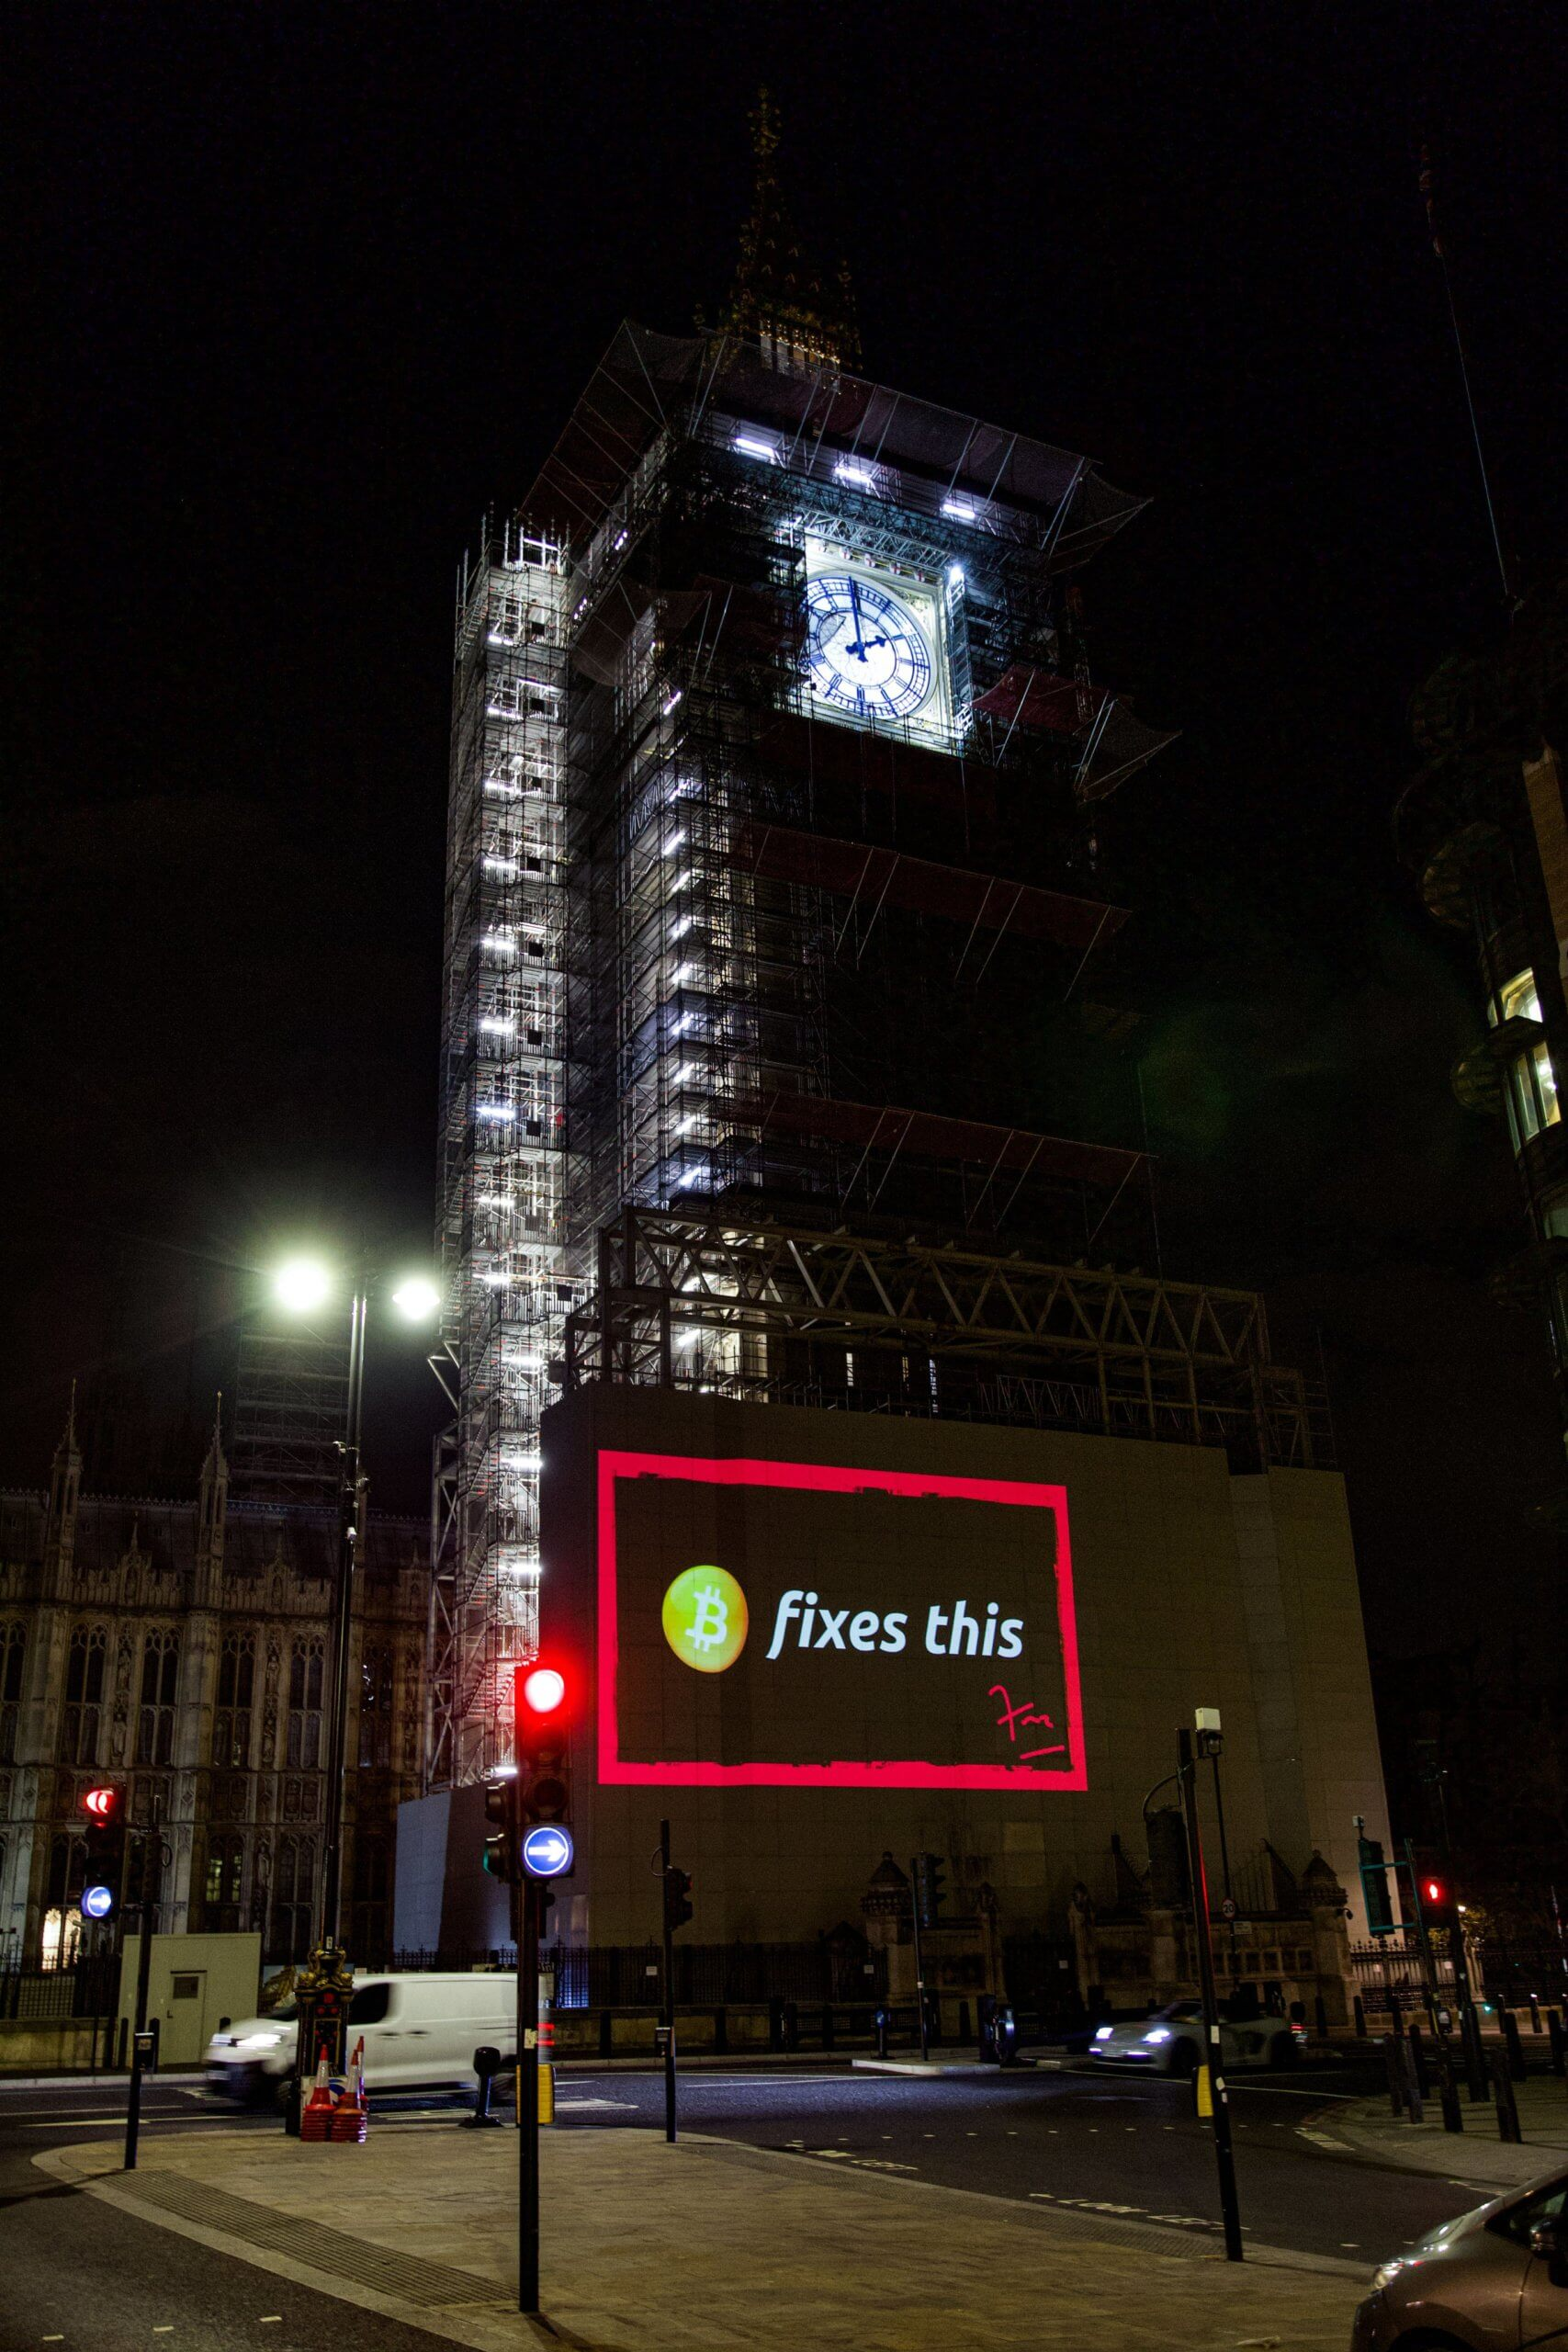 """Bitcoin fixes this"" projected on the Parliament building in London"